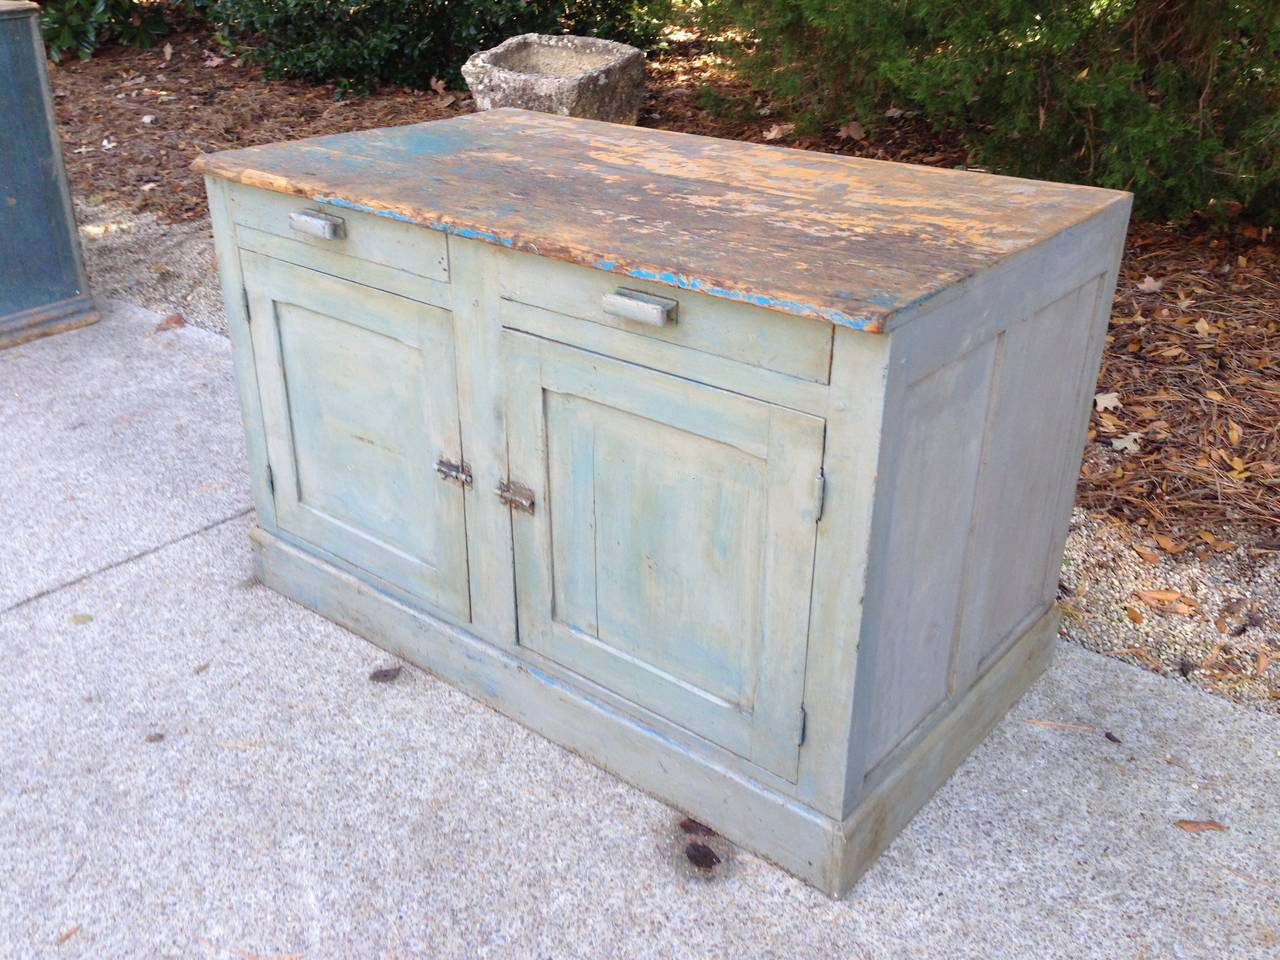 Original Blue painted patina on this French painted cabinet with two drawers, Originally from Provence. Would make a great kitchen island as it is paneled on all four sides